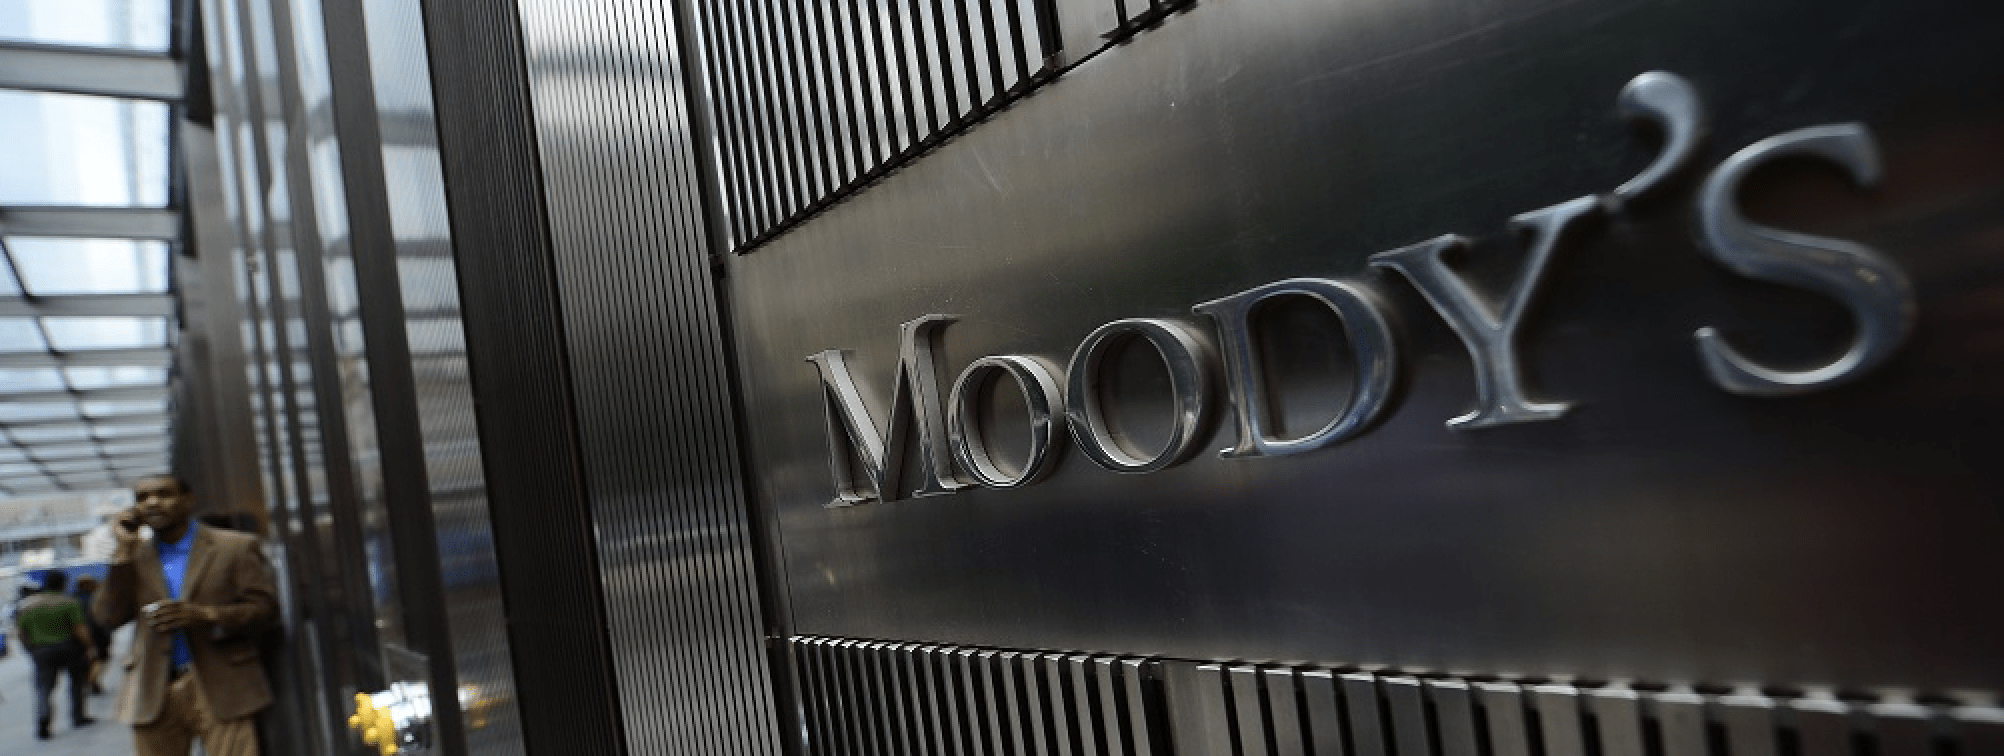 Moody's downgraded SA's credit rating, outlook negative